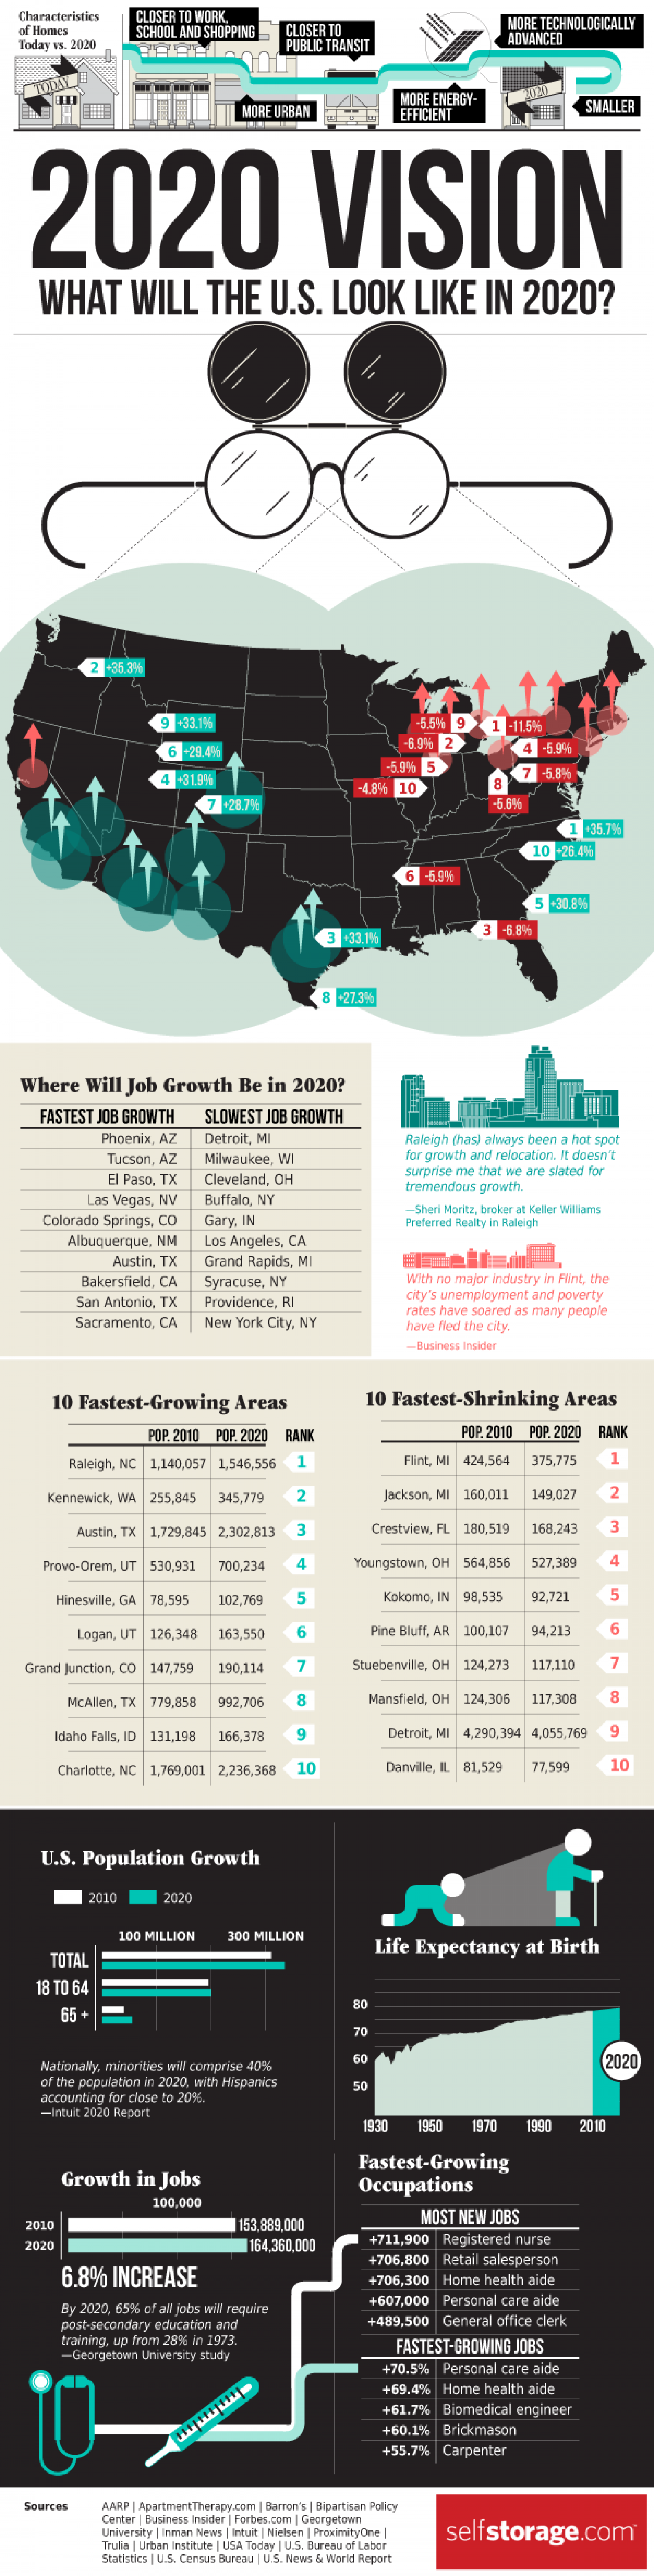 2020 Vision: What Will the U.S. Look Like in 2020? Infographic